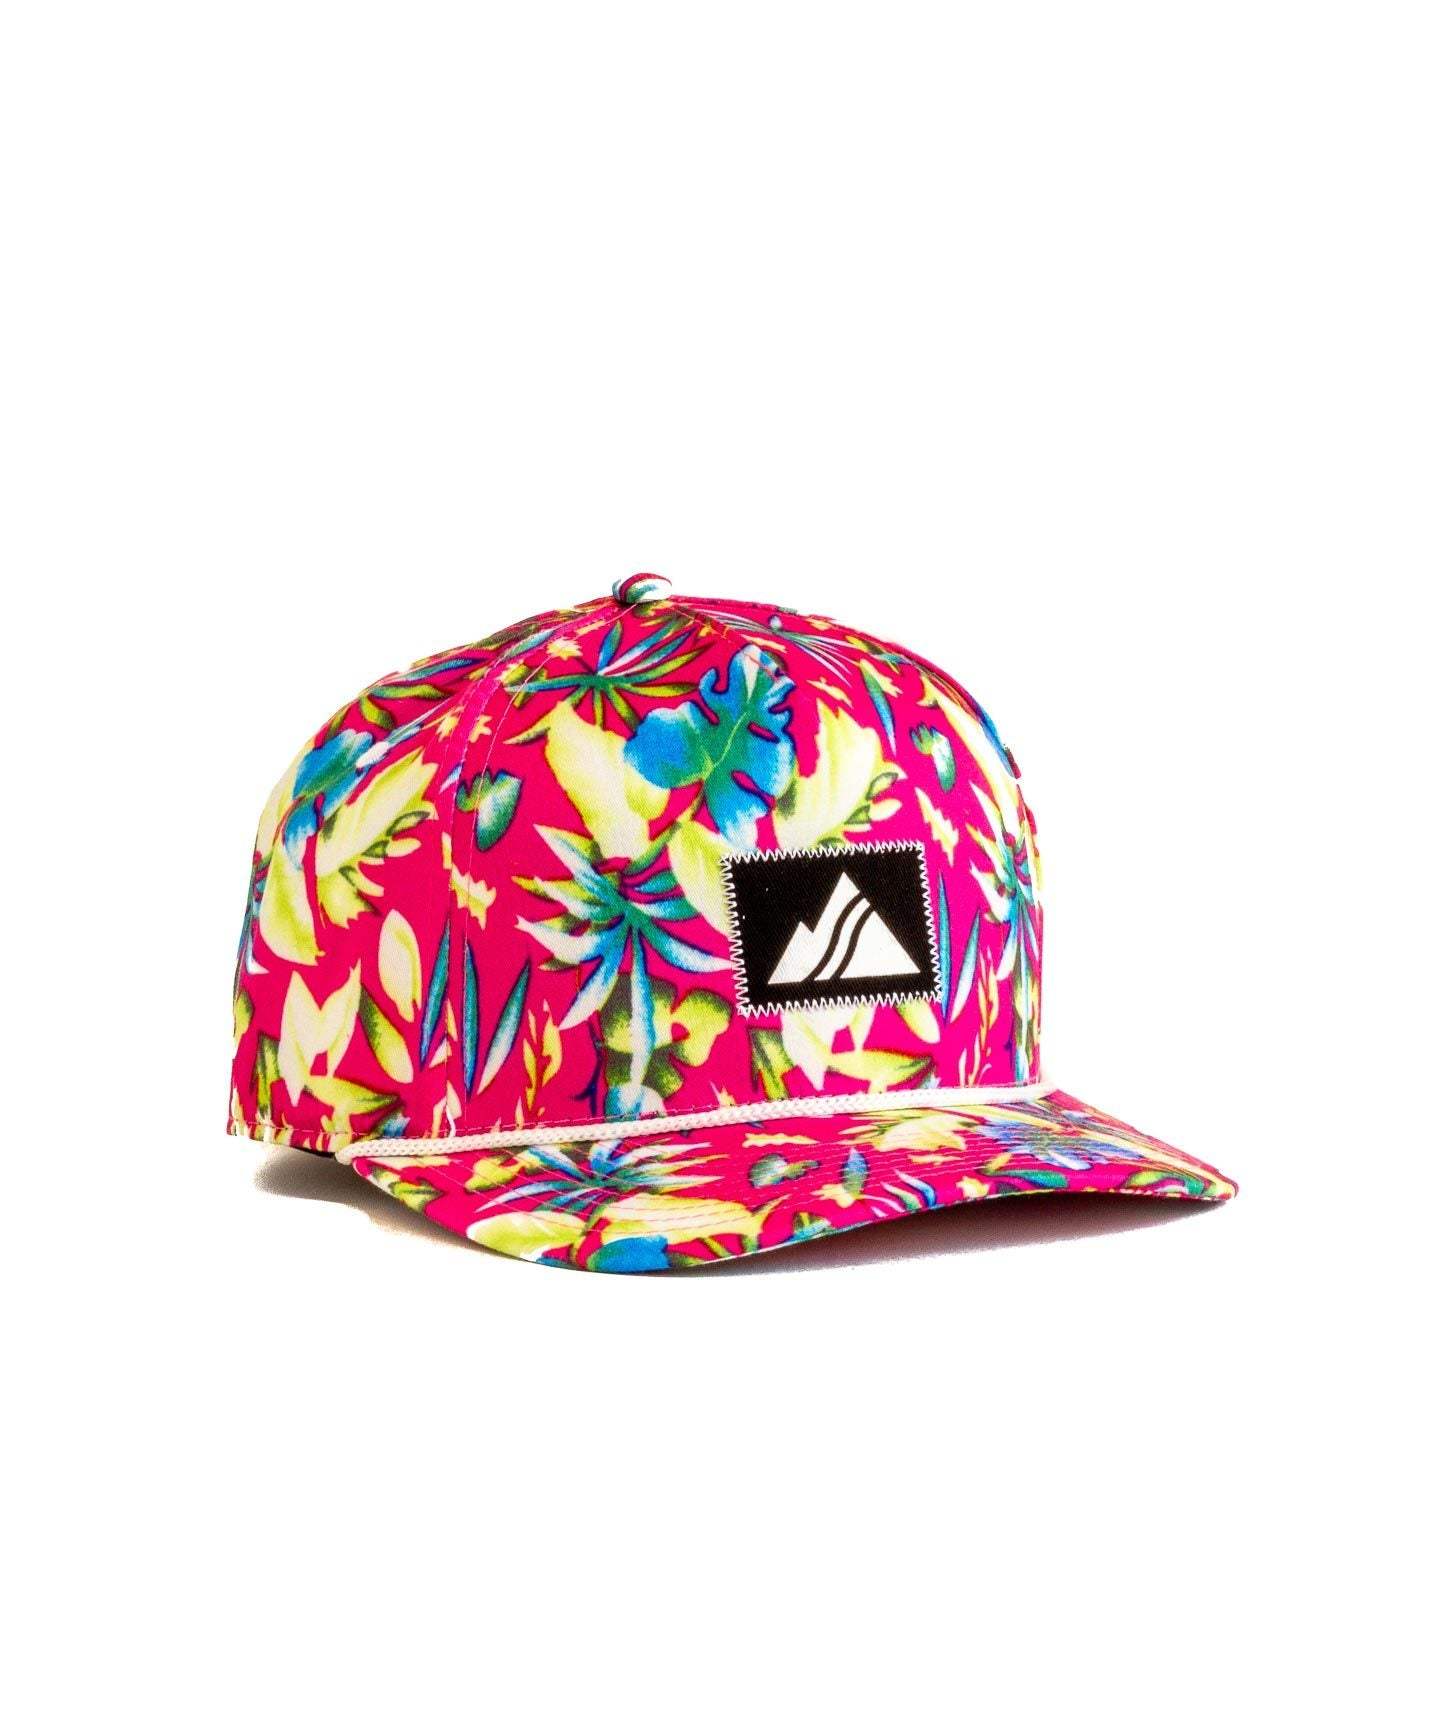 Dawn Patrol 5 Panel Hat